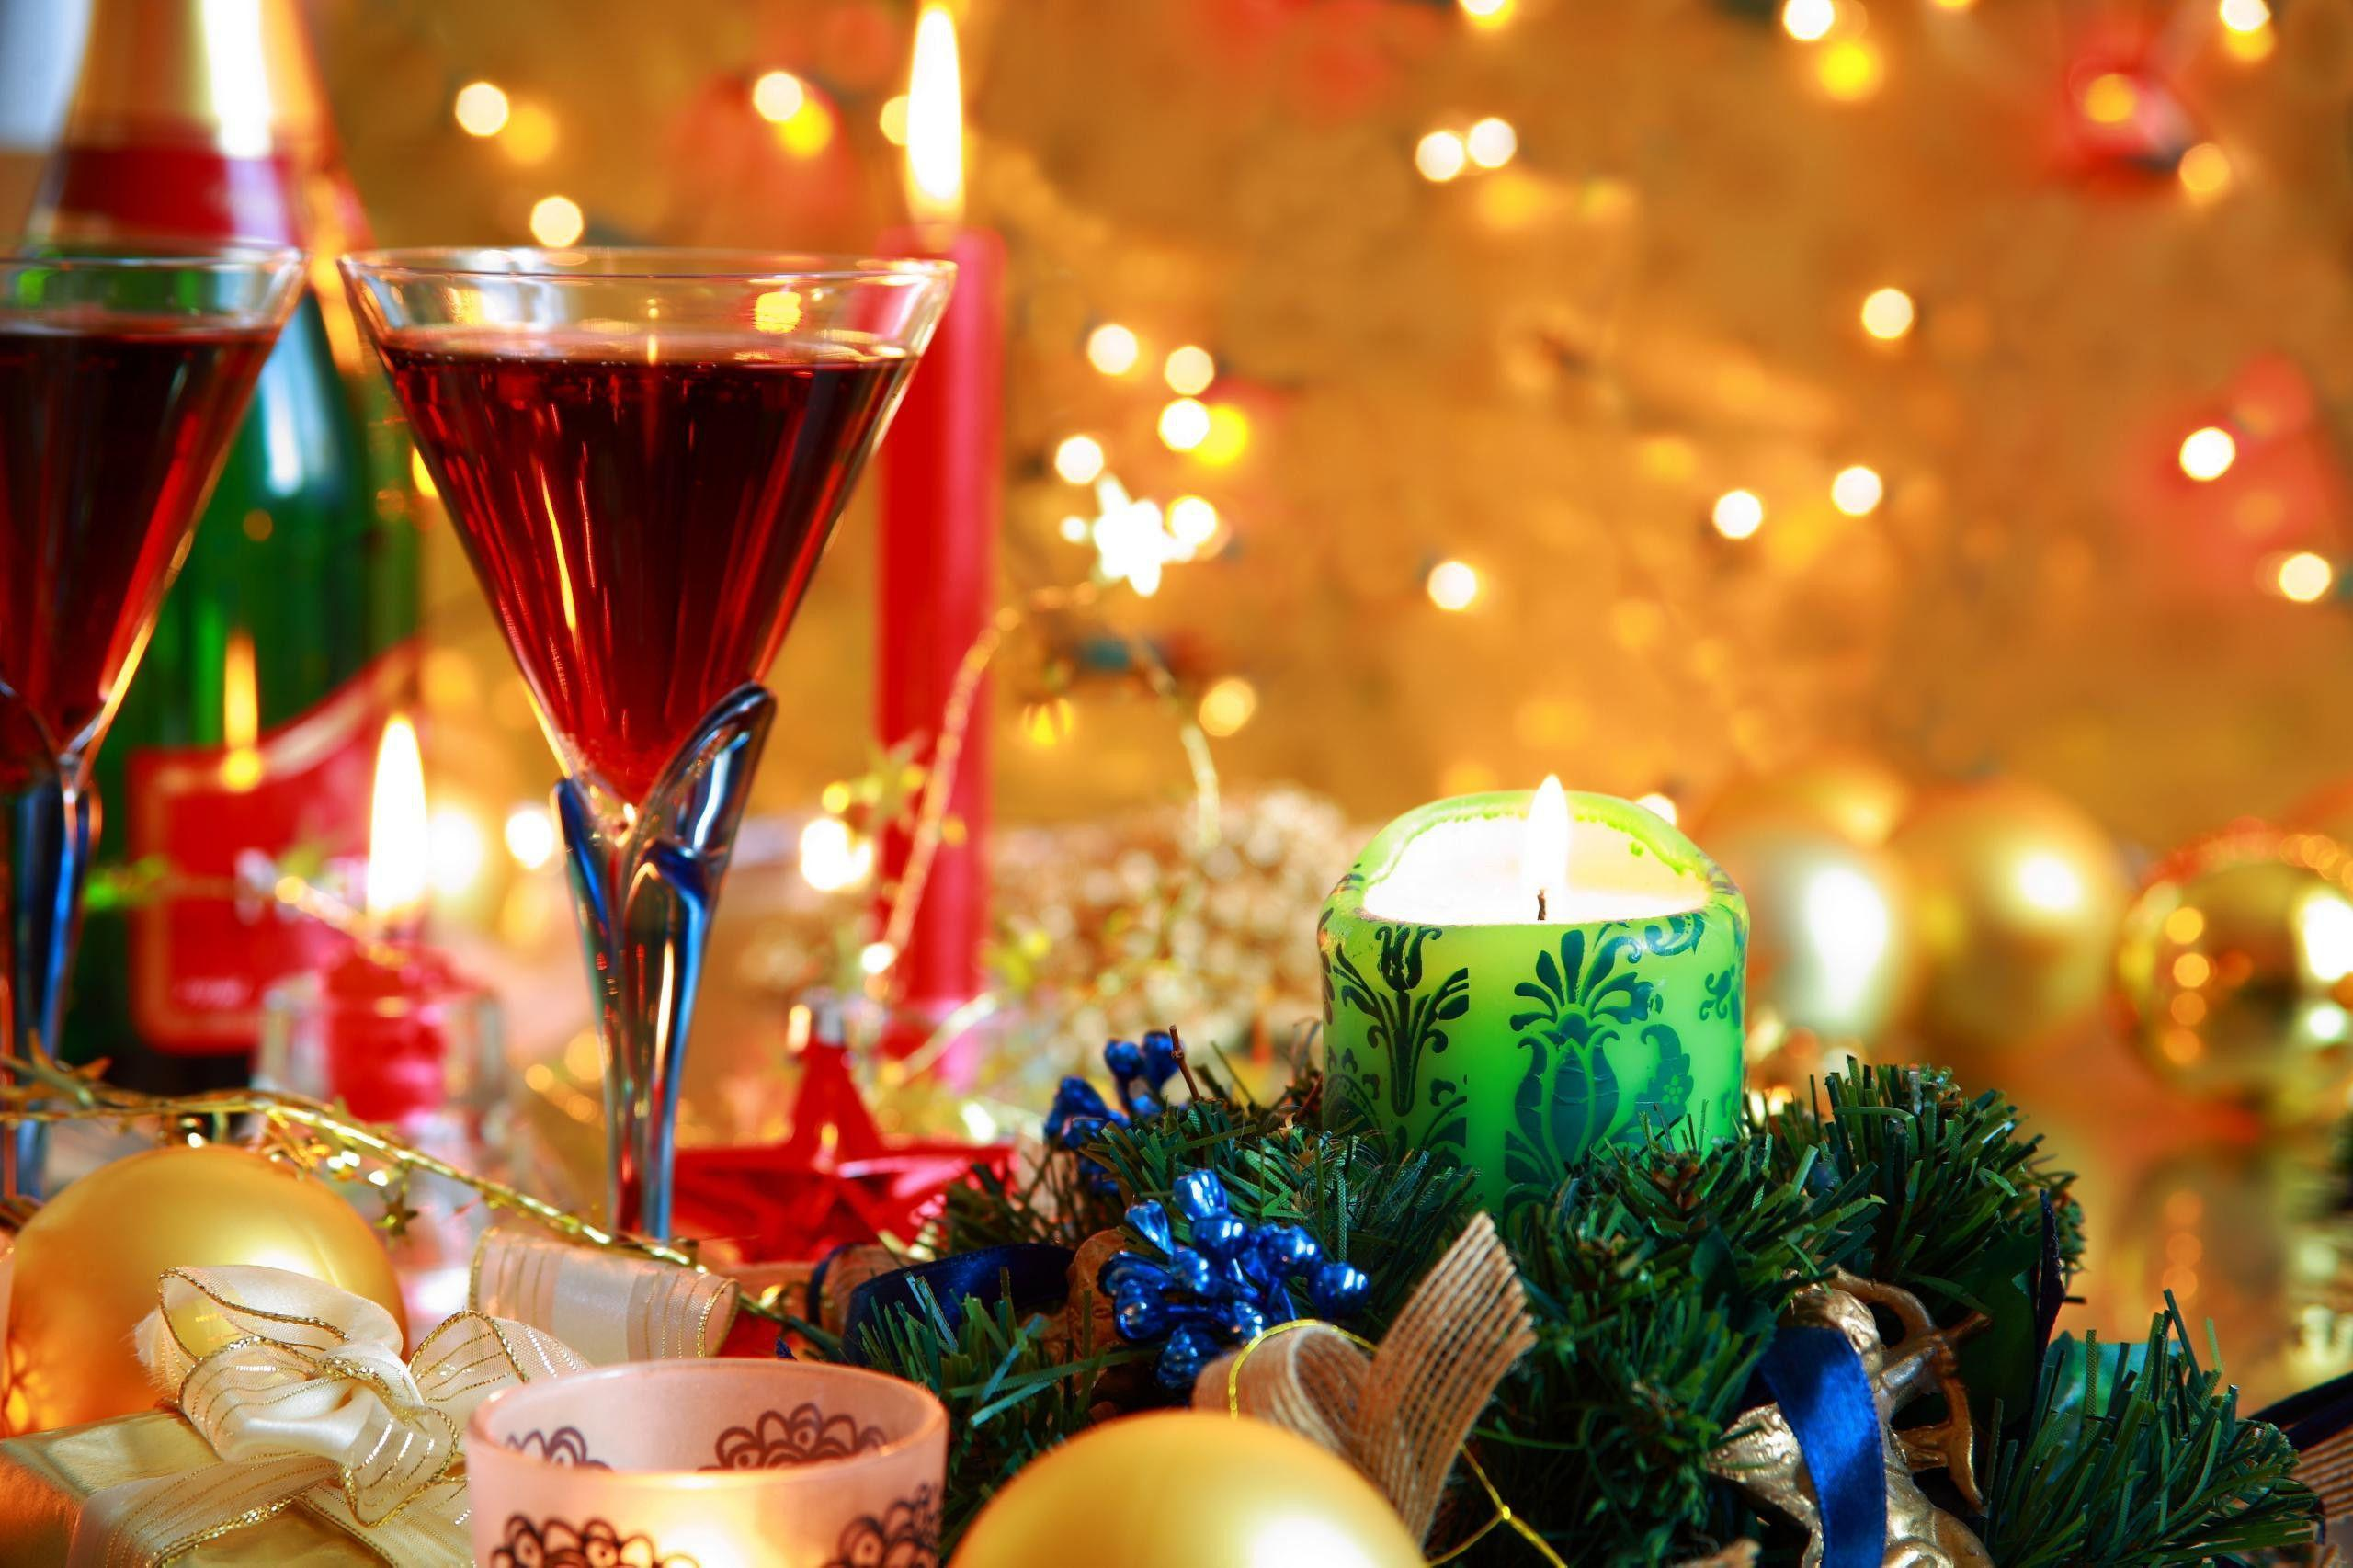 Wallpapers holiday, new year&eve, candles, champagne, glasses